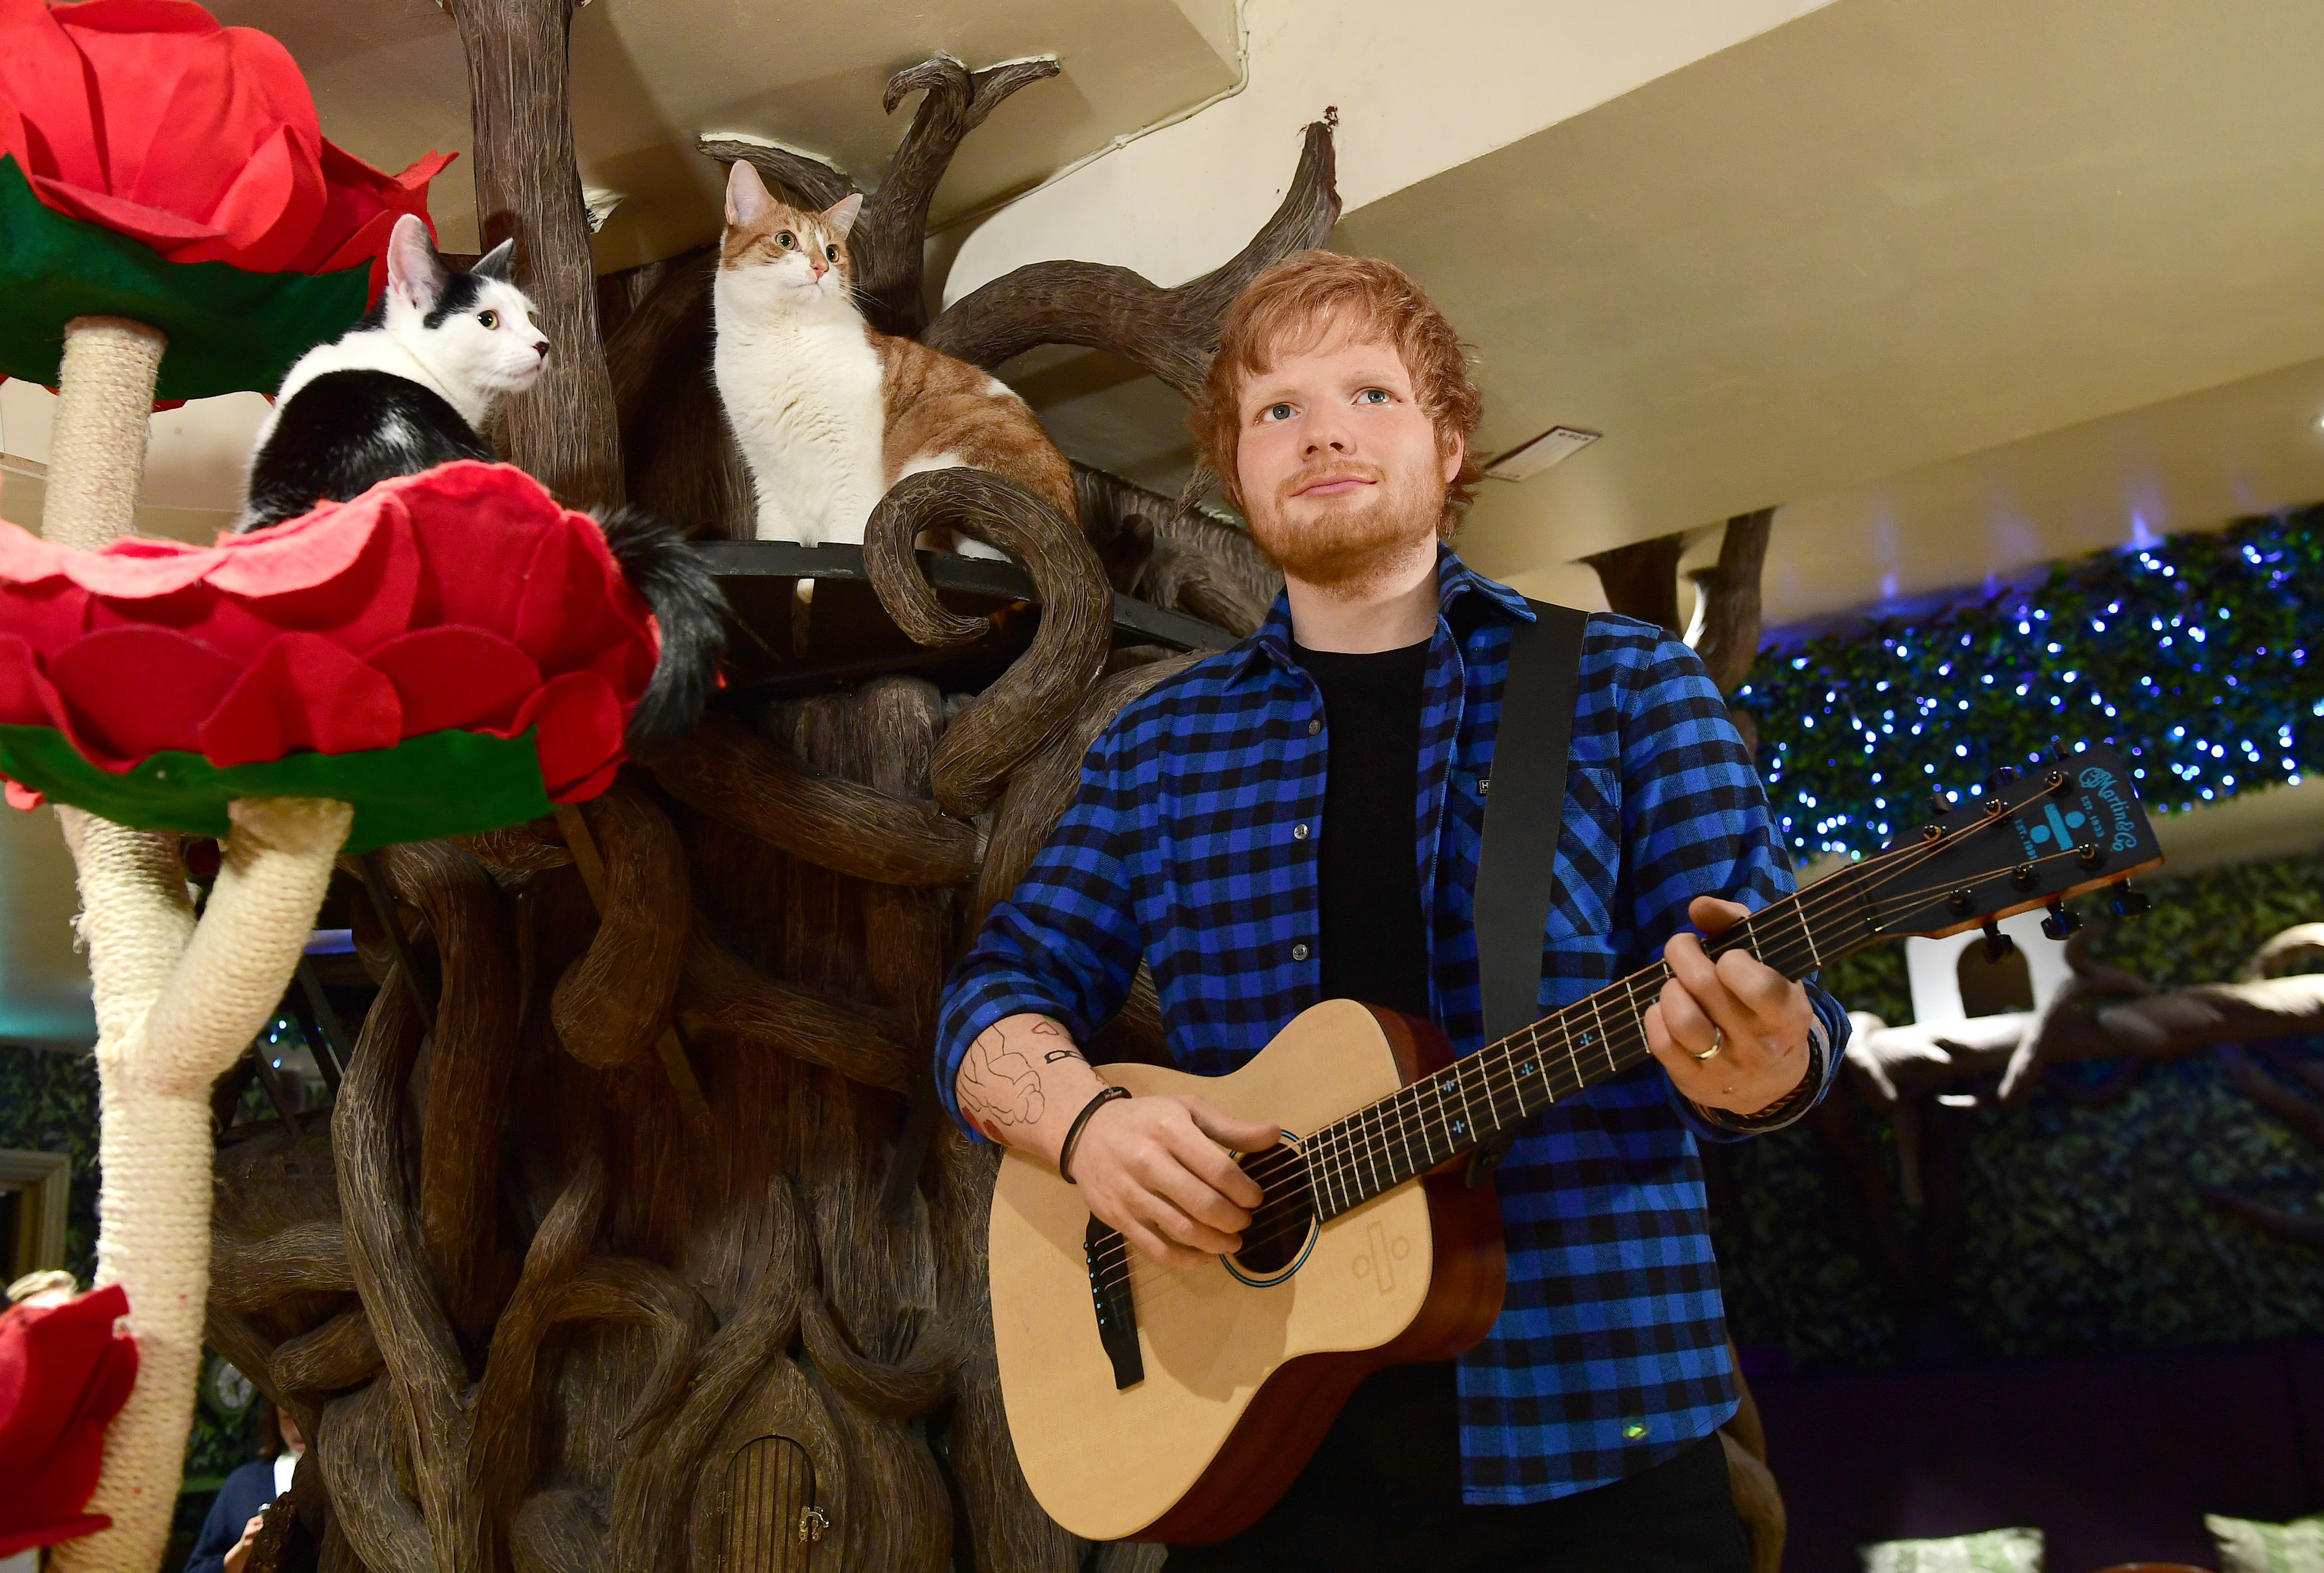 Ed Sheeran Madame Tussauds waxwork at Dinah's Cat